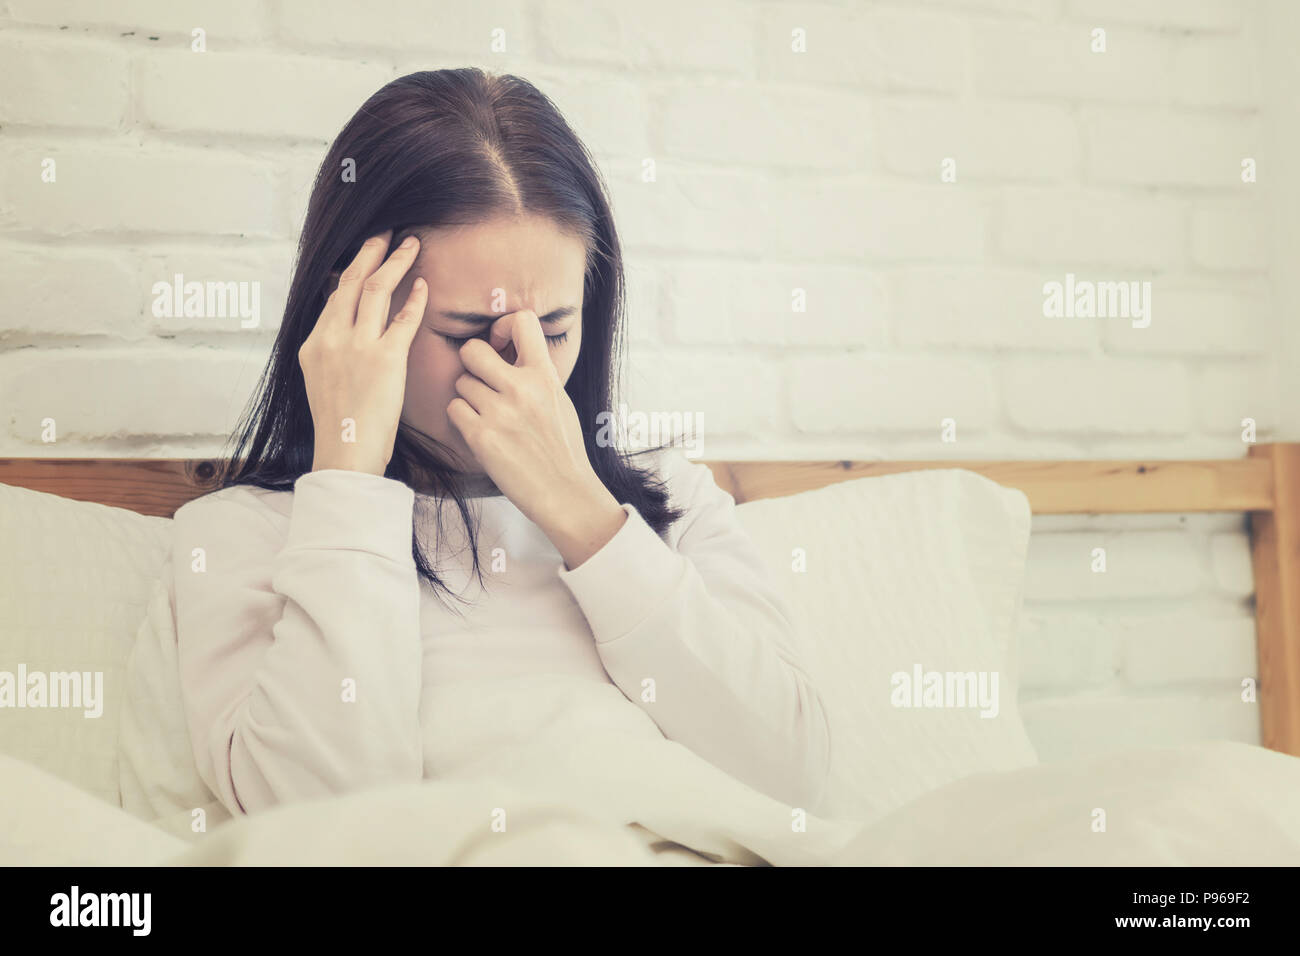 Asian woman sitting and sad on bed with hand touching his head sitting on bed - Stock Image